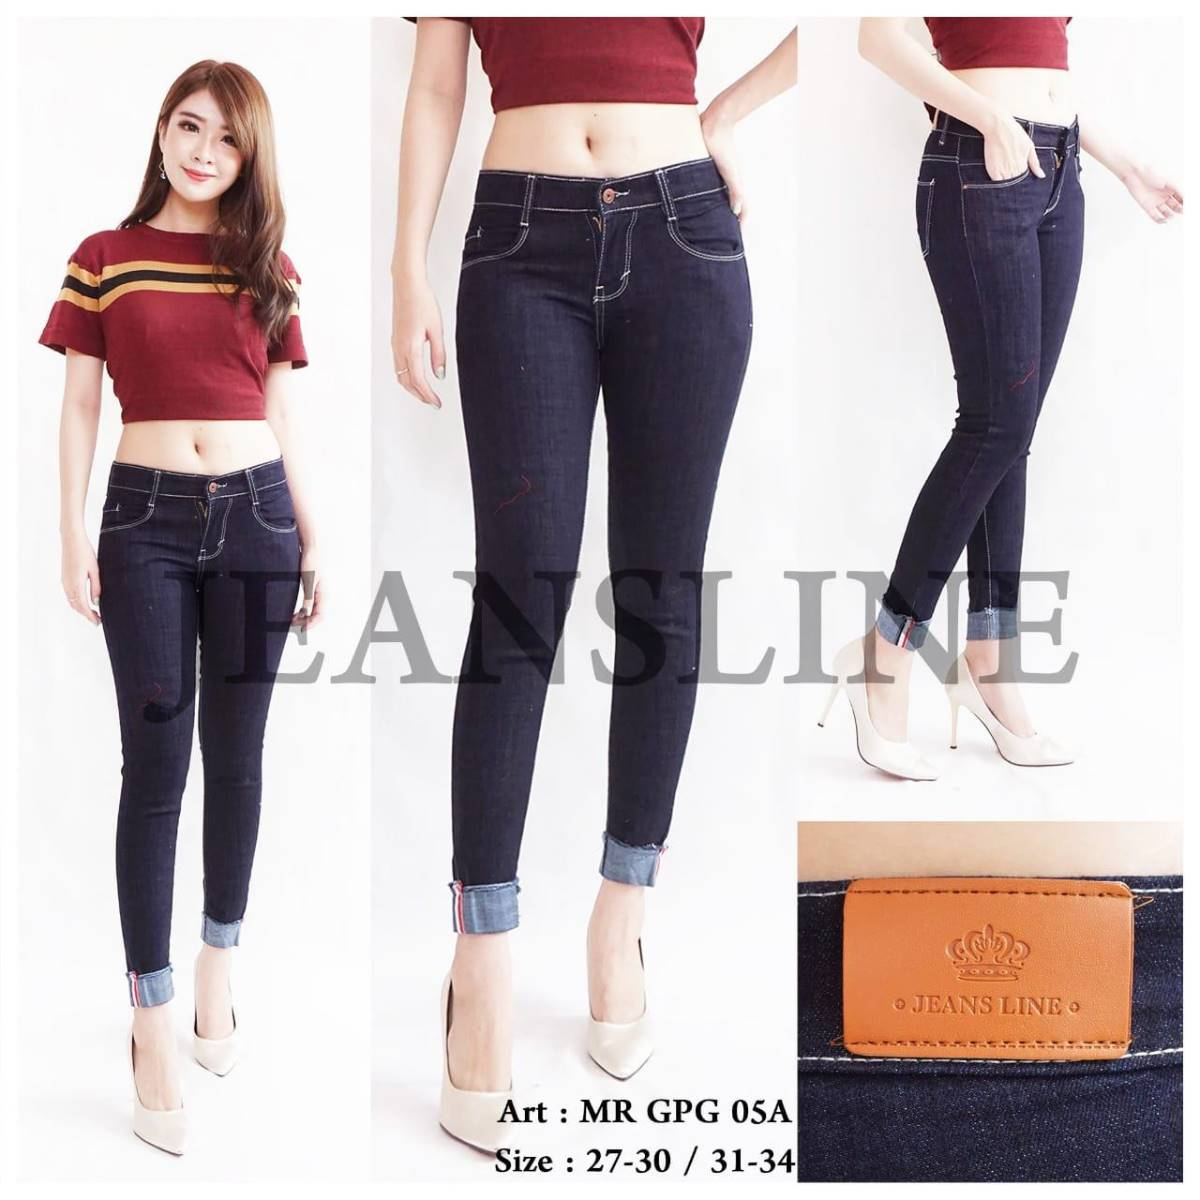 Celana Panjang Jeans Ladies (mr Gpg 05a) - Paket 4 Pcs - Size 27, 28, 29, 303